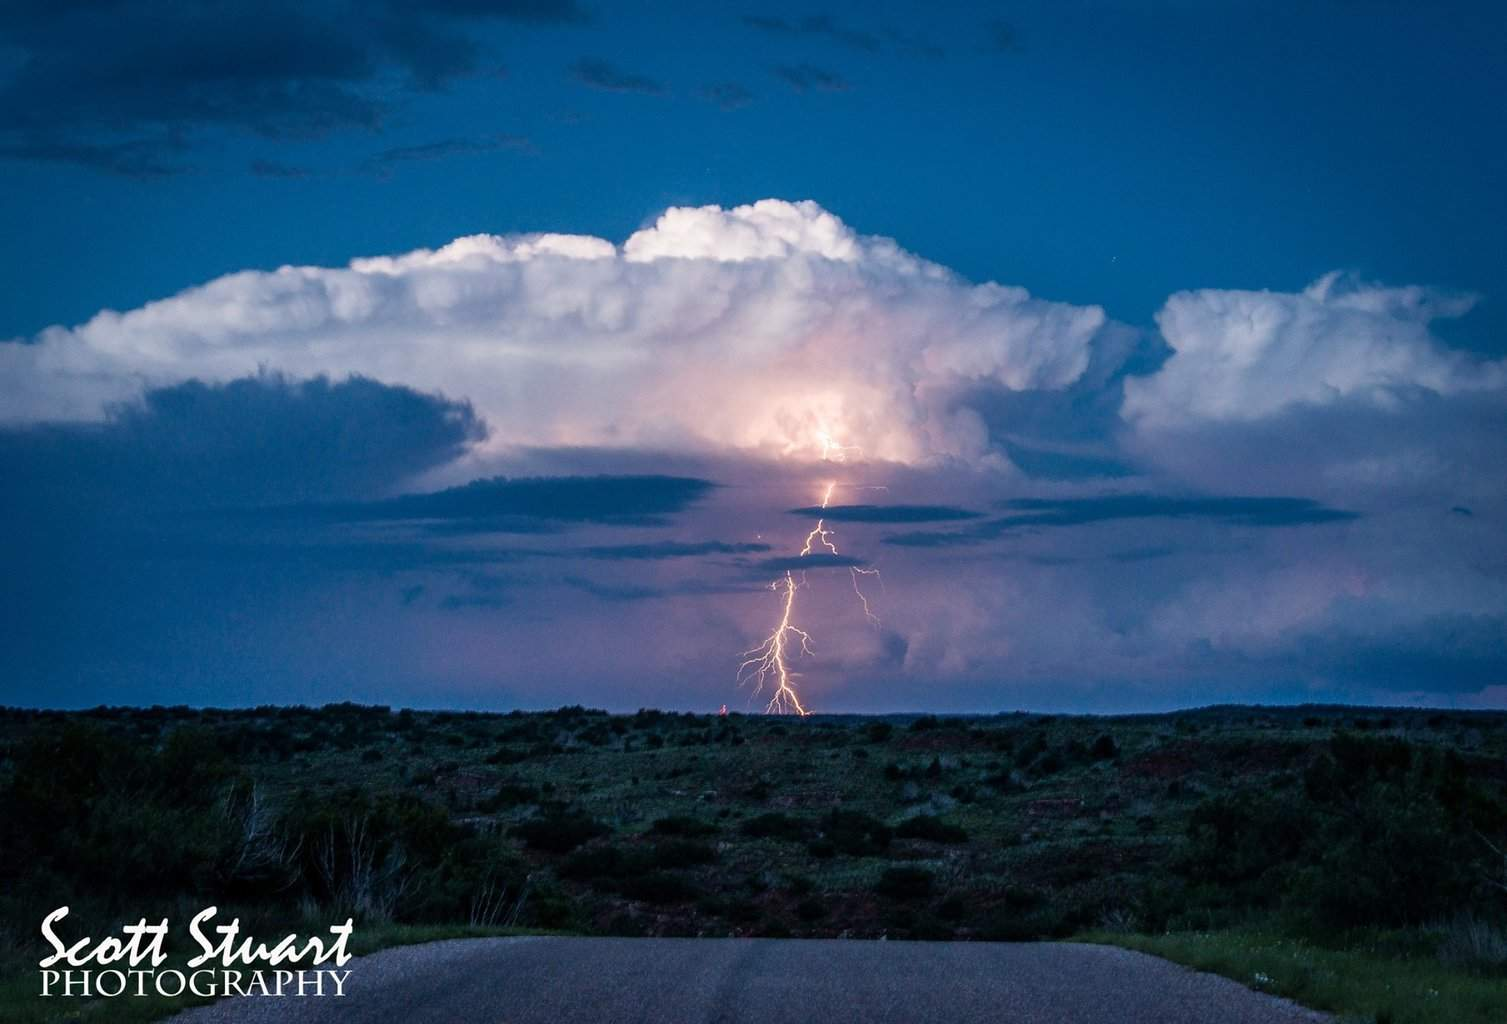 Evening thunderstorm at Caprock Canyons State Park, Texas.